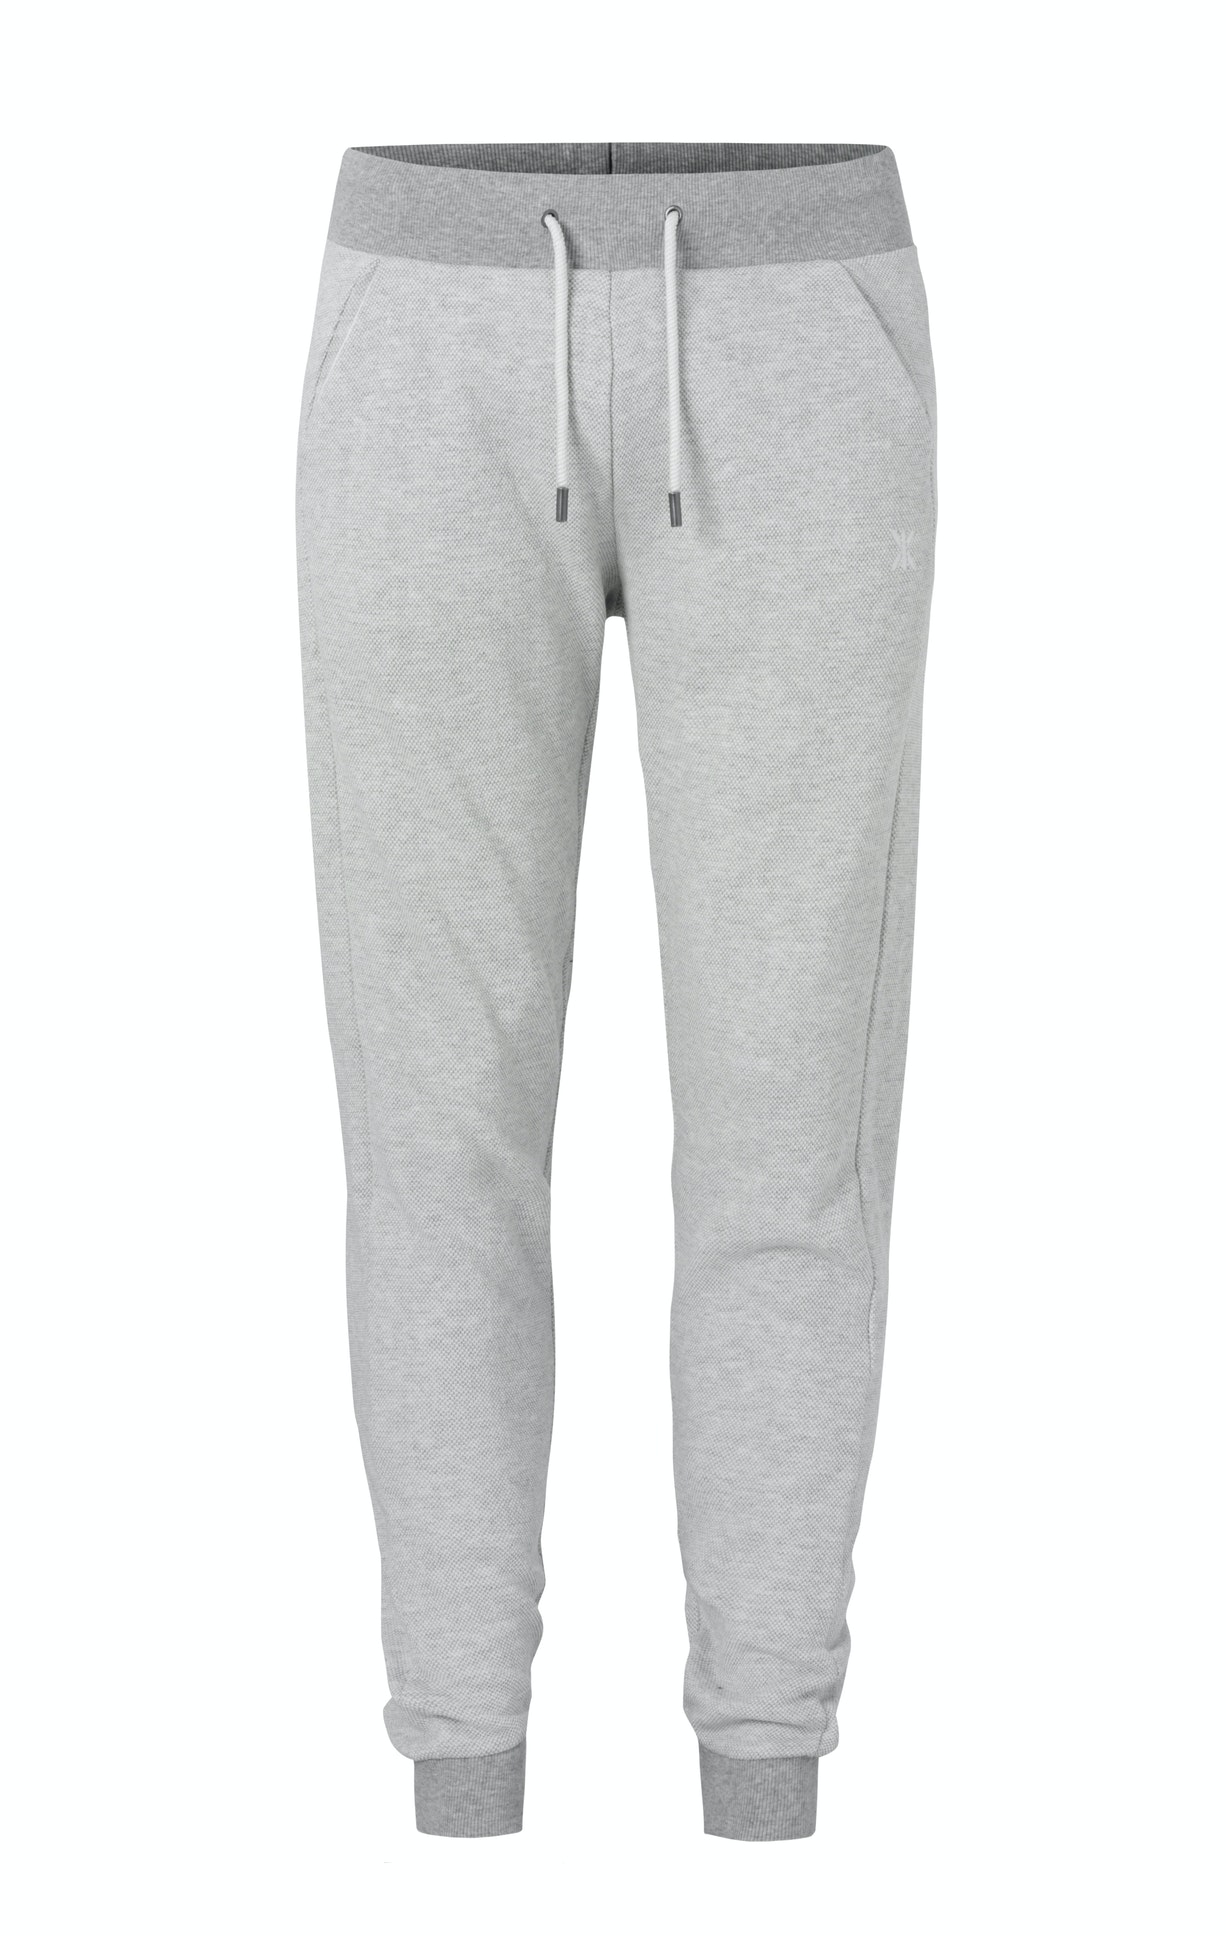 Slow Pant Nature Melange Fitted light grey jogger in high quality cotton with piqué fabric structure and soft brushed fabric on the inside. The pant has an elastic waistband with drawstrings.